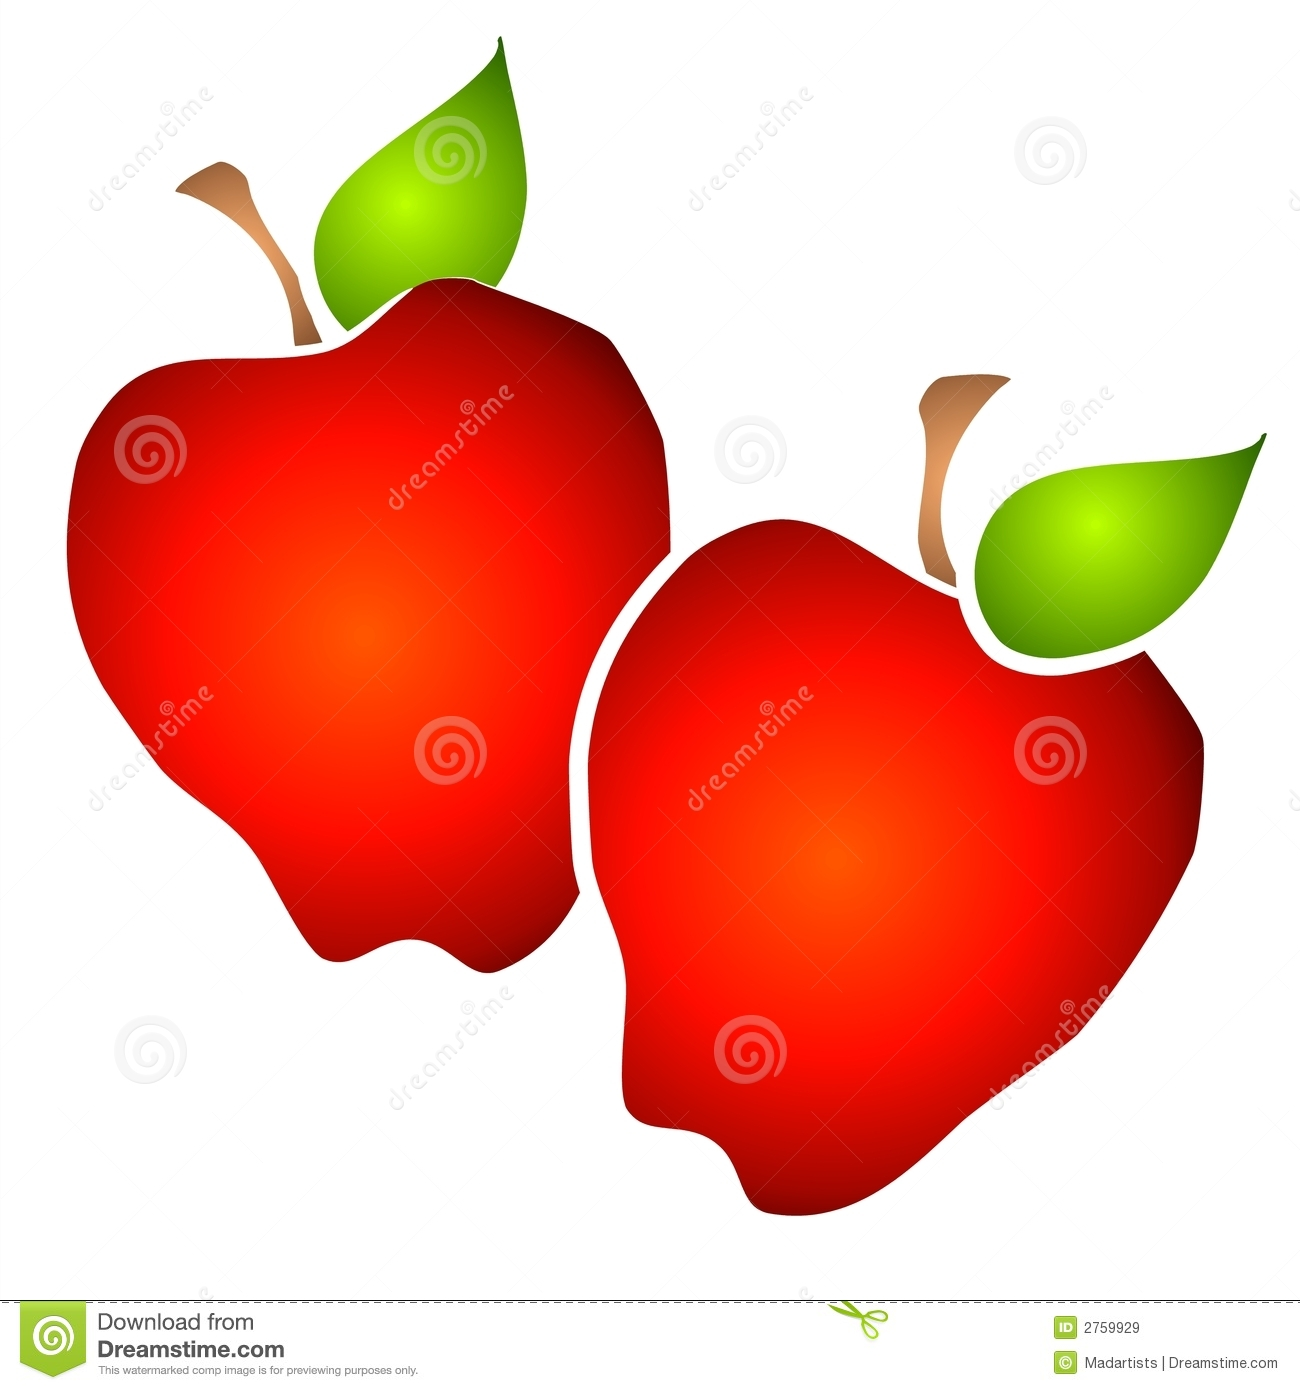 hight resolution of 2 red apples side by side with rich gradient colors on a white background